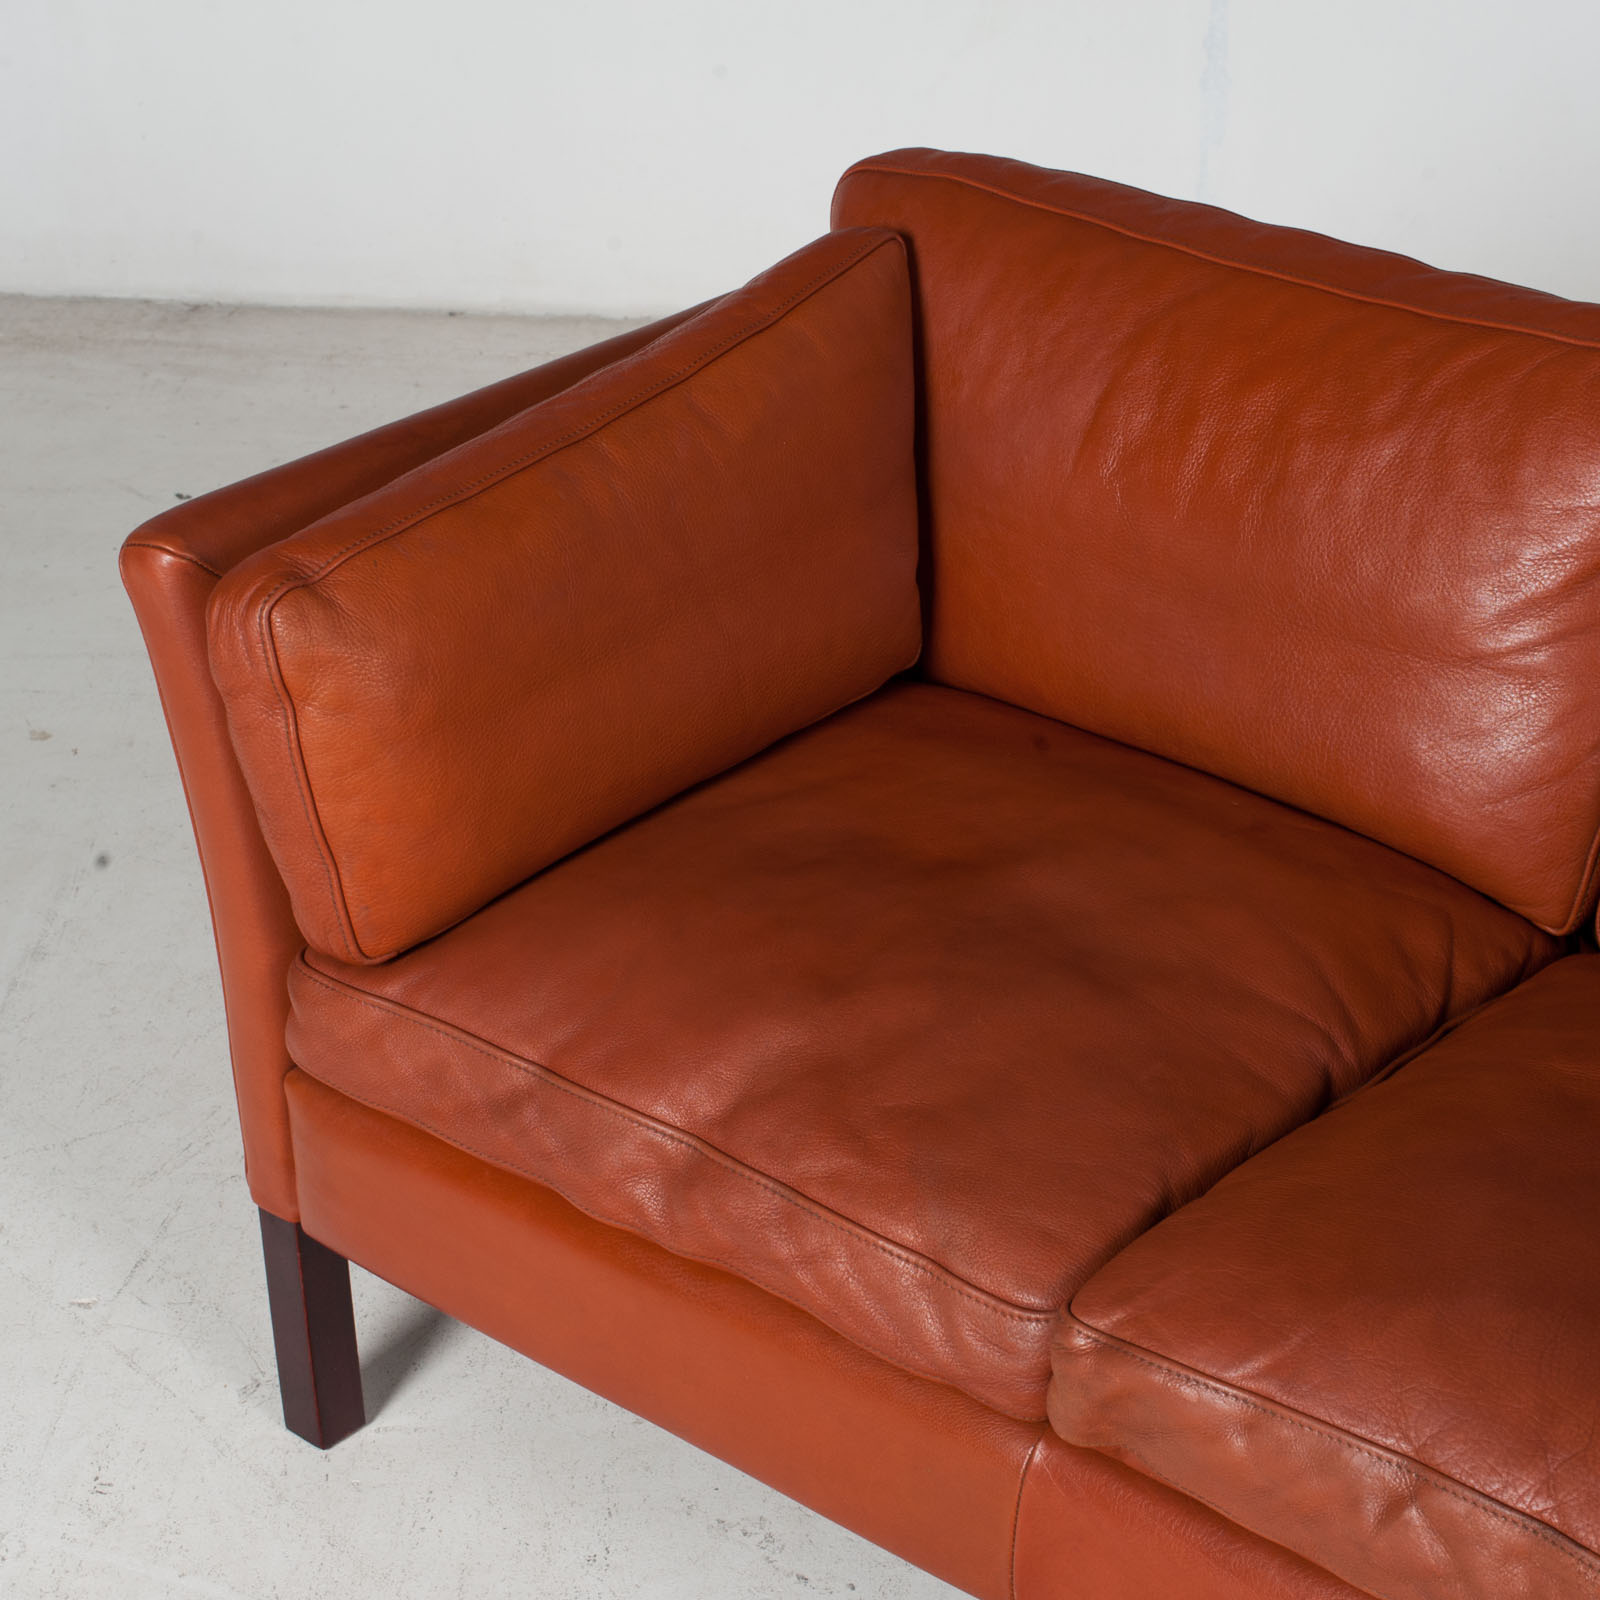 2 Seat Sofa By Stouby In Tan Leather, 1960s, Denmark 5